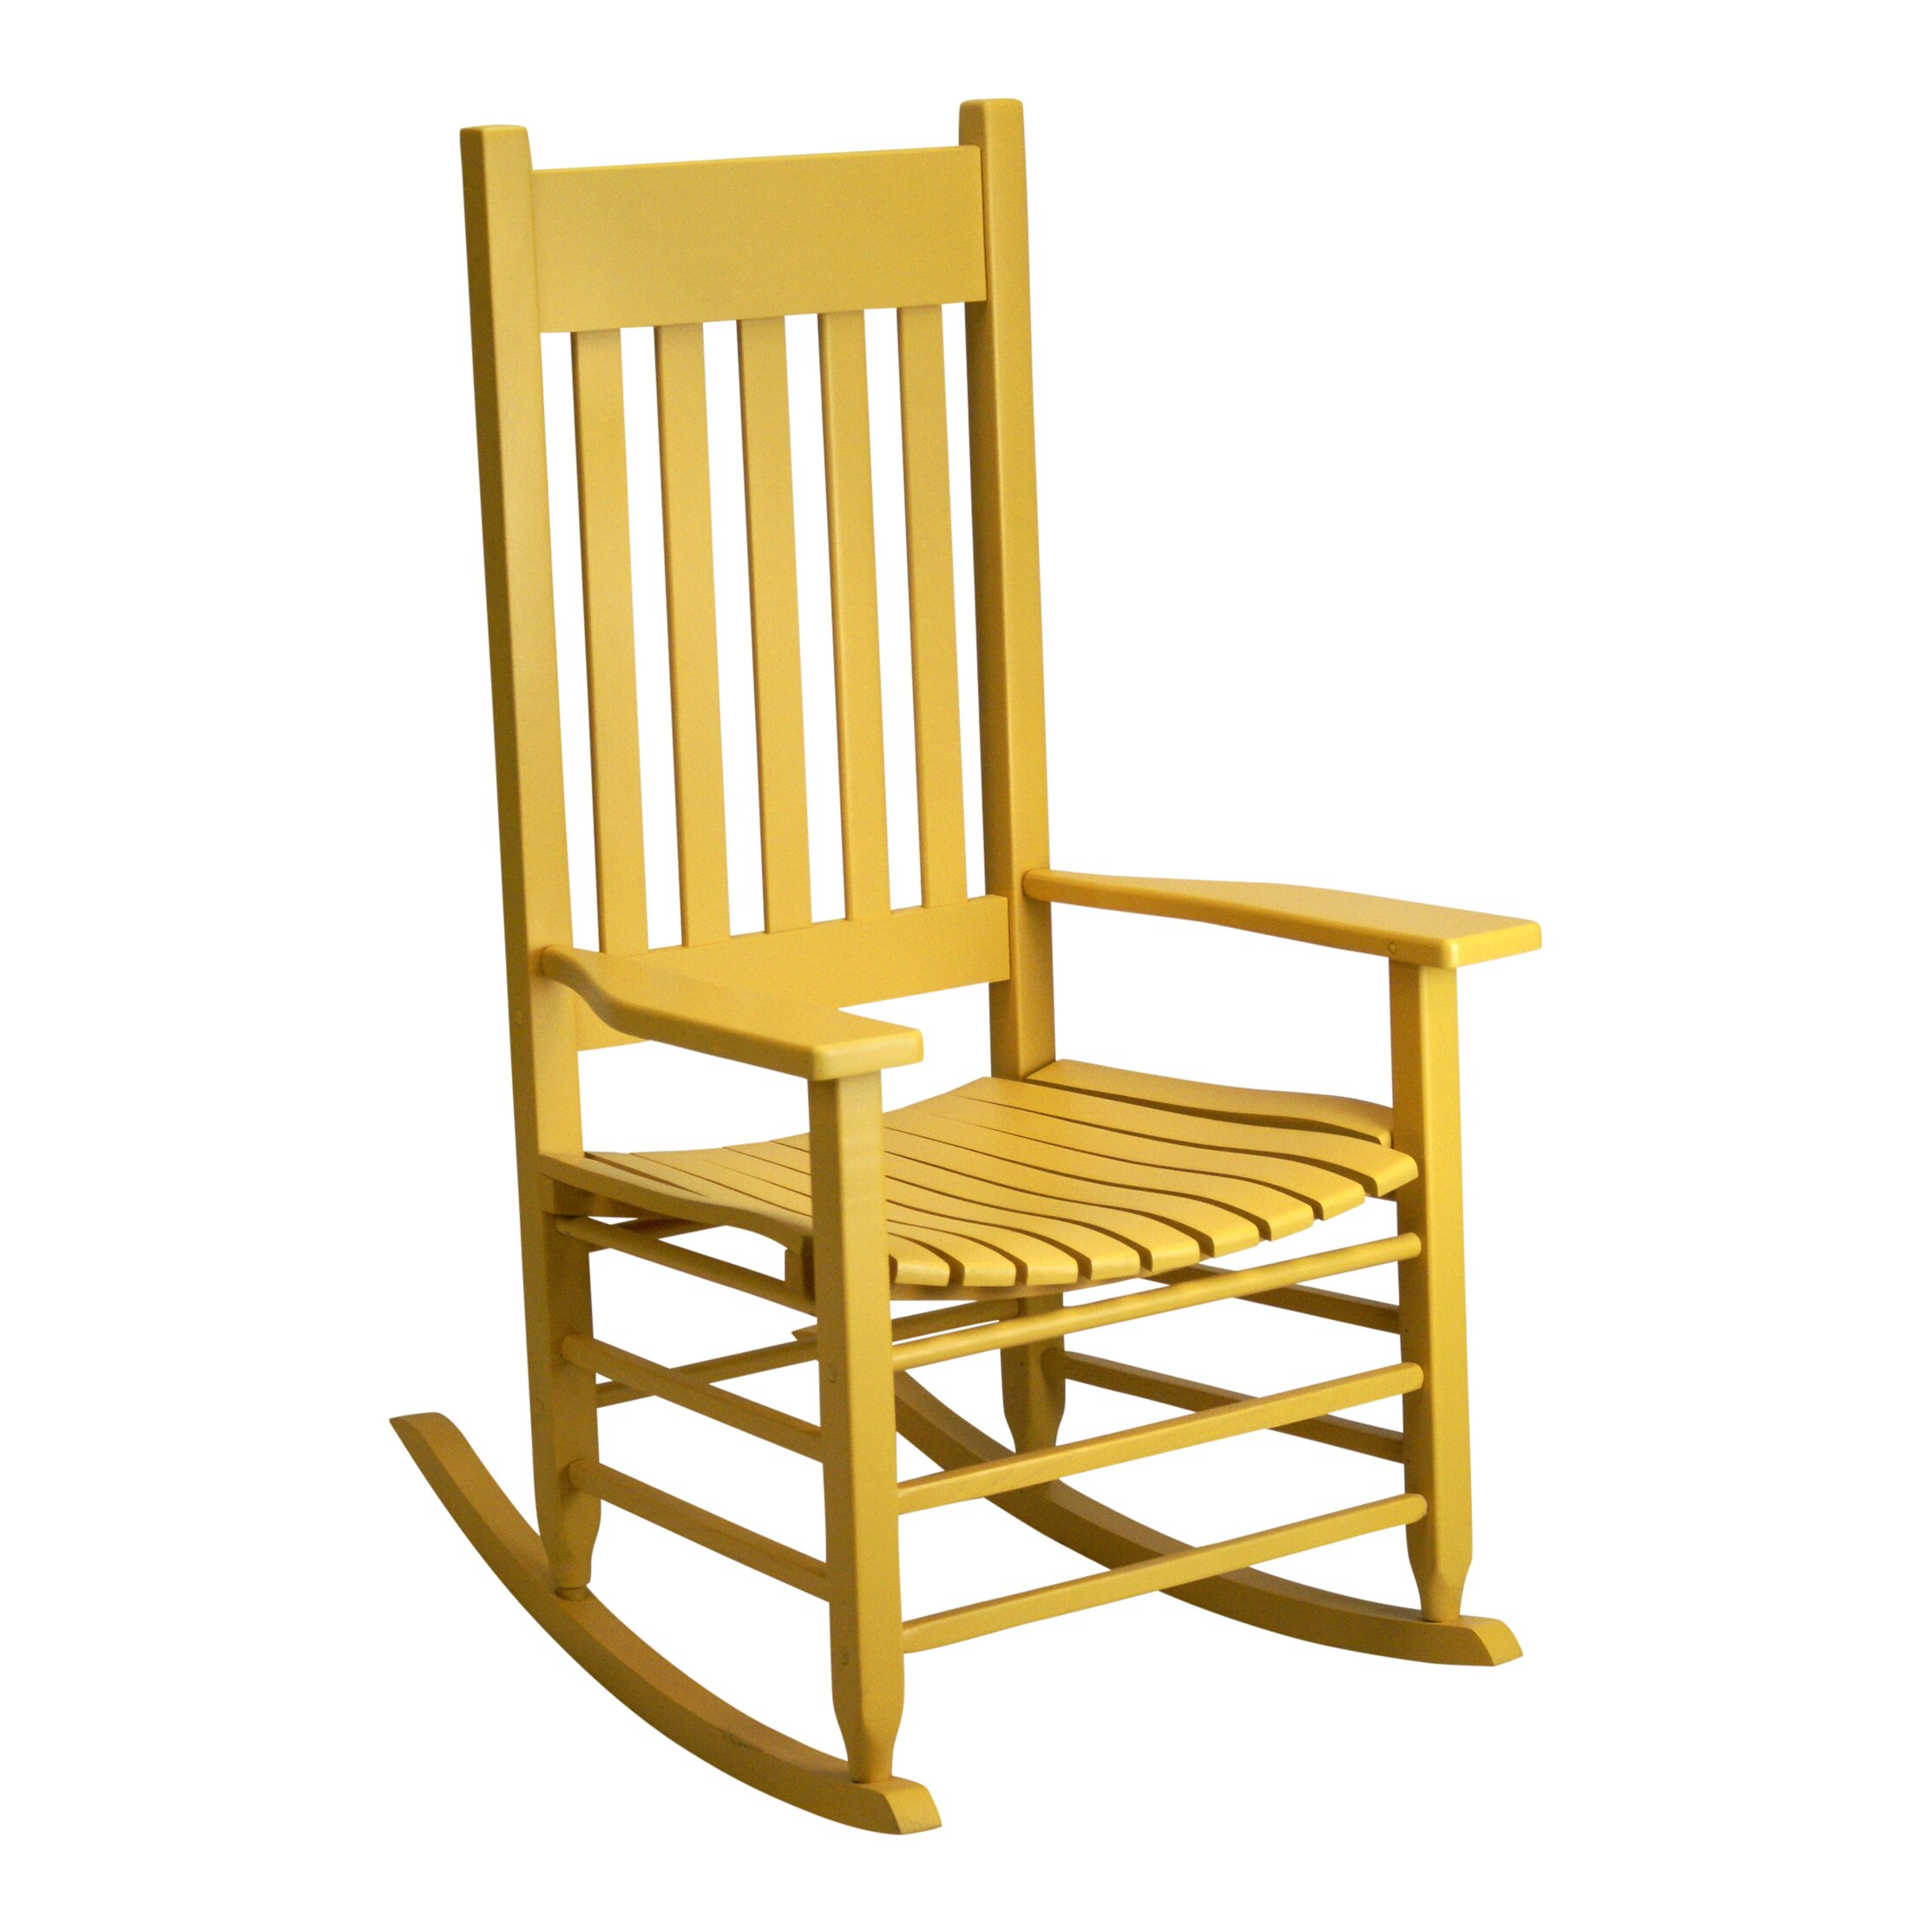 Hinkle Chair Company Plantation Rocking Chair & Reviews